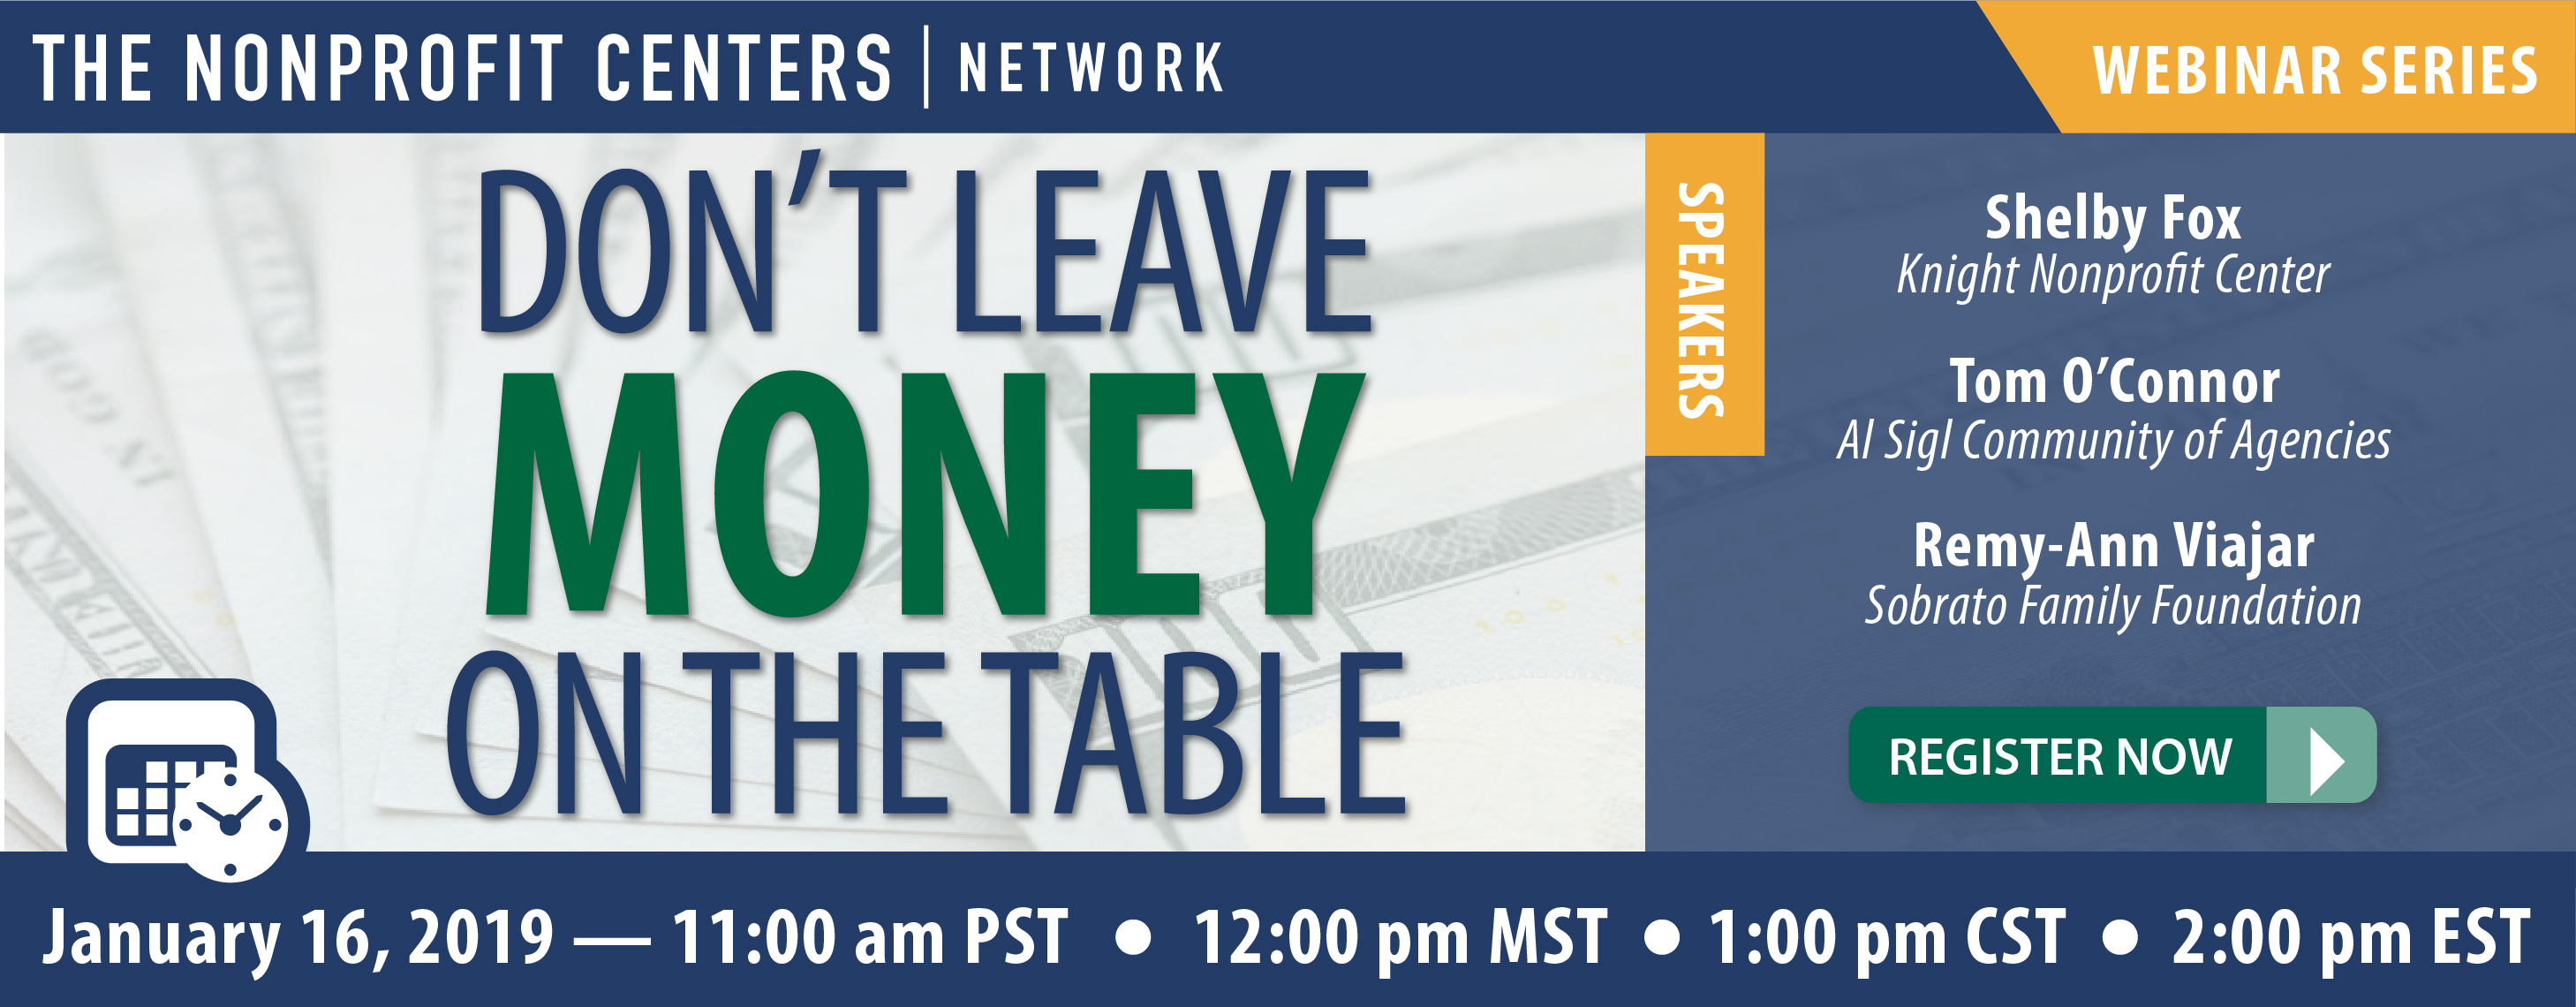 Don't Leave Money on the Table Webinar